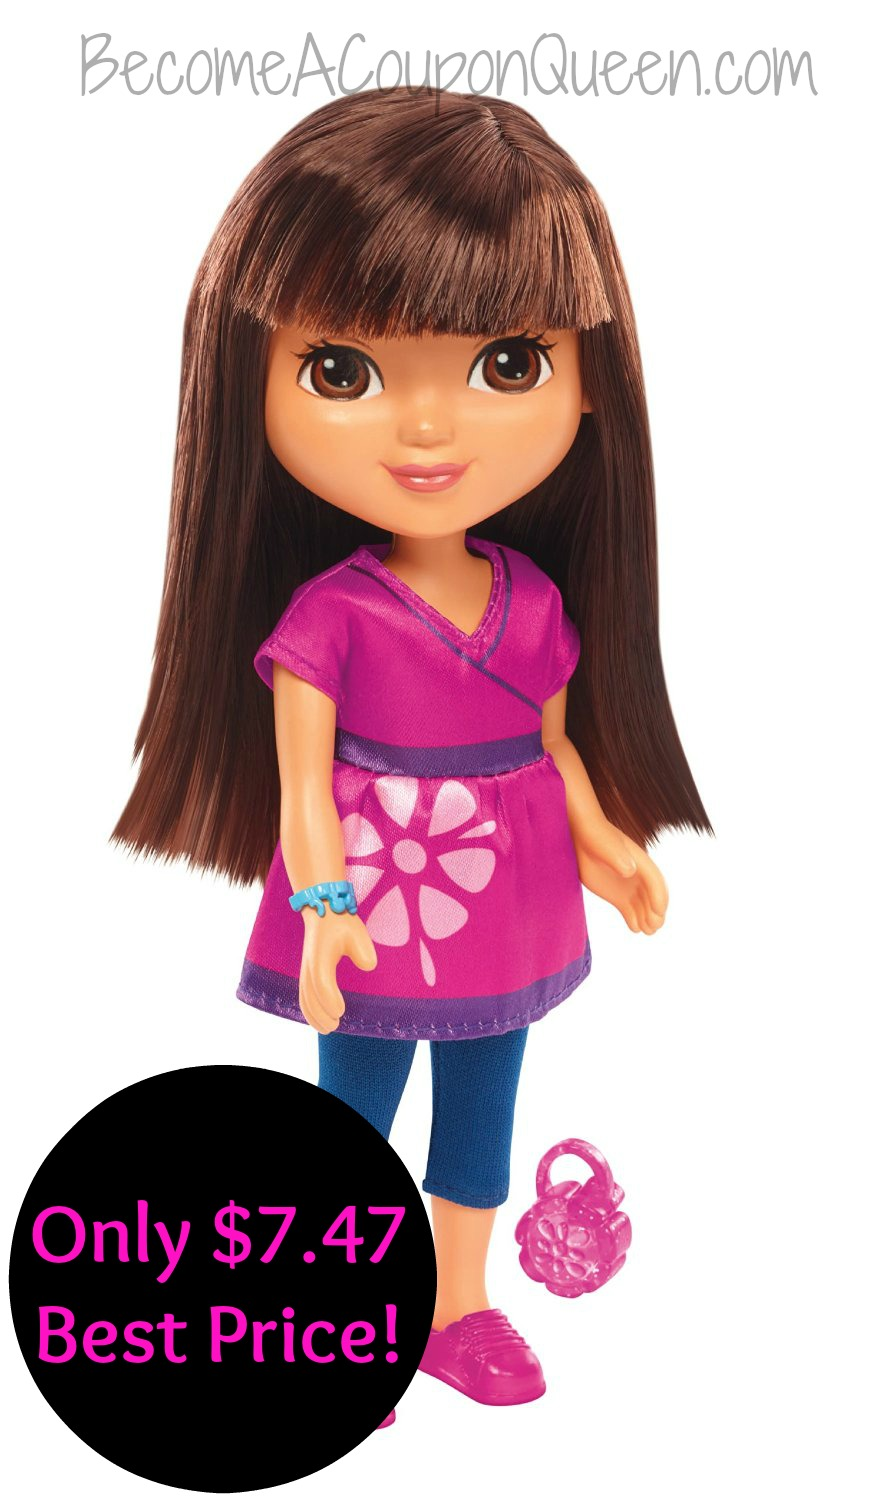 dora and friends dora doll  7 47